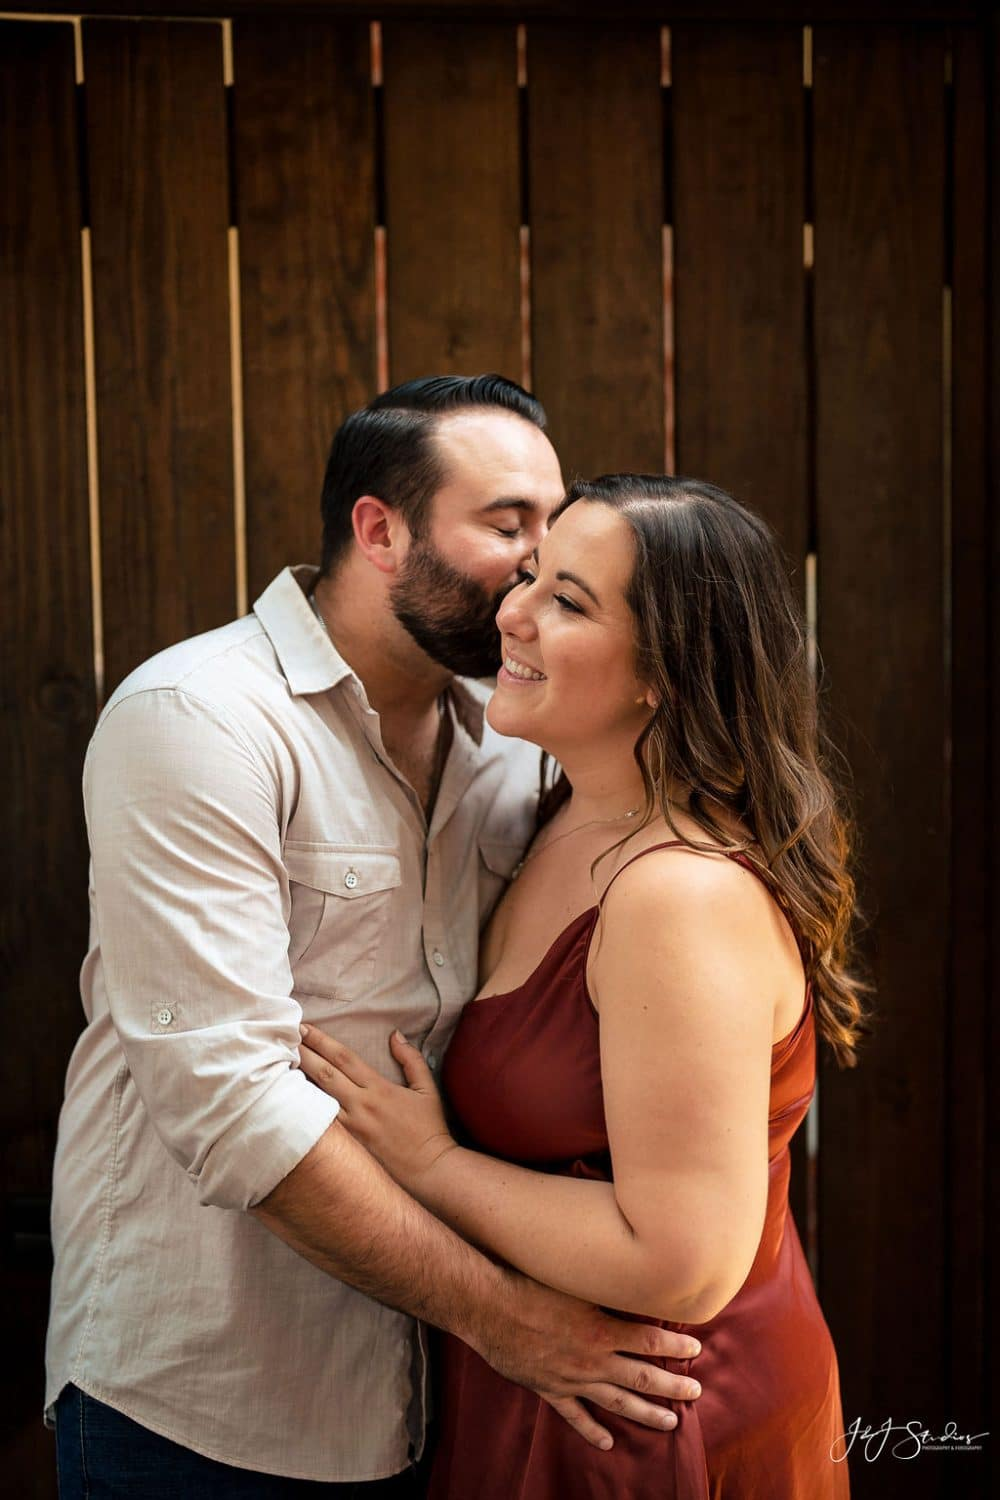 James kissing his fiance during photoshoot Rittenhouse Square and Addison Street Engagement Shot By John Ryan